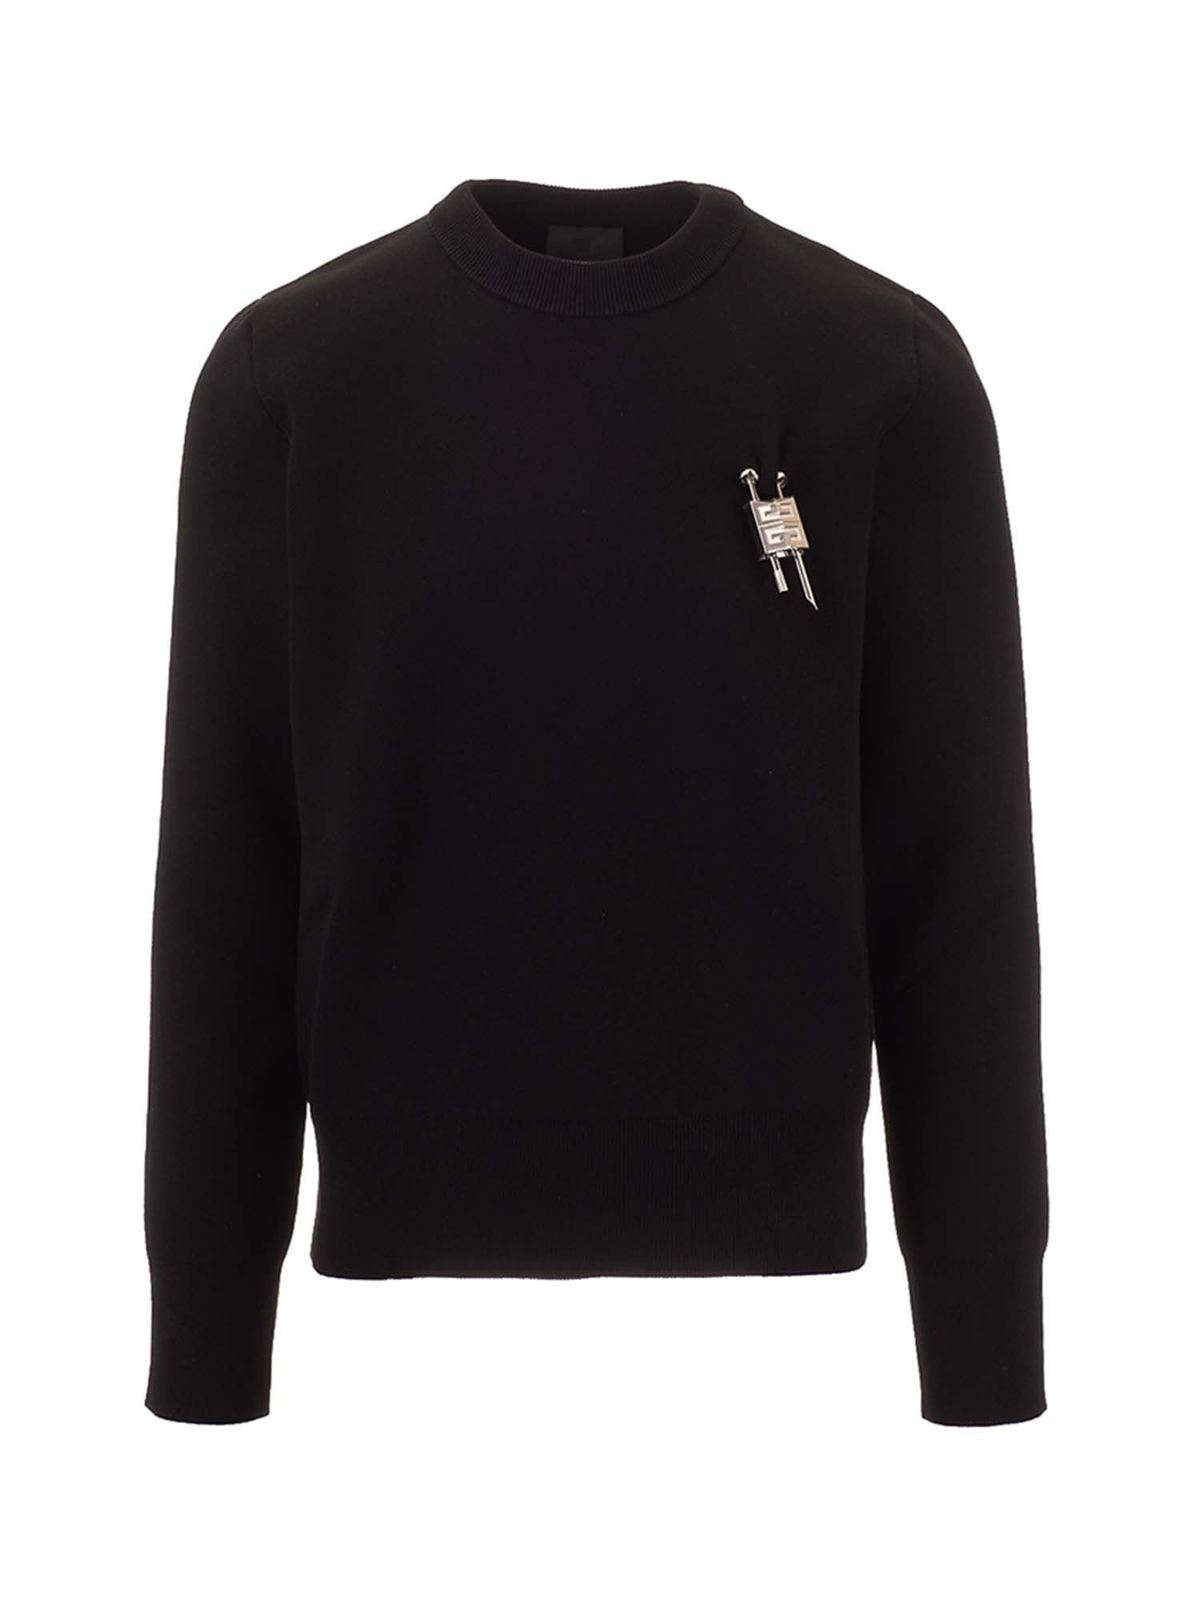 Givenchy PADLOCK SWEATSHIRT IN BLACK